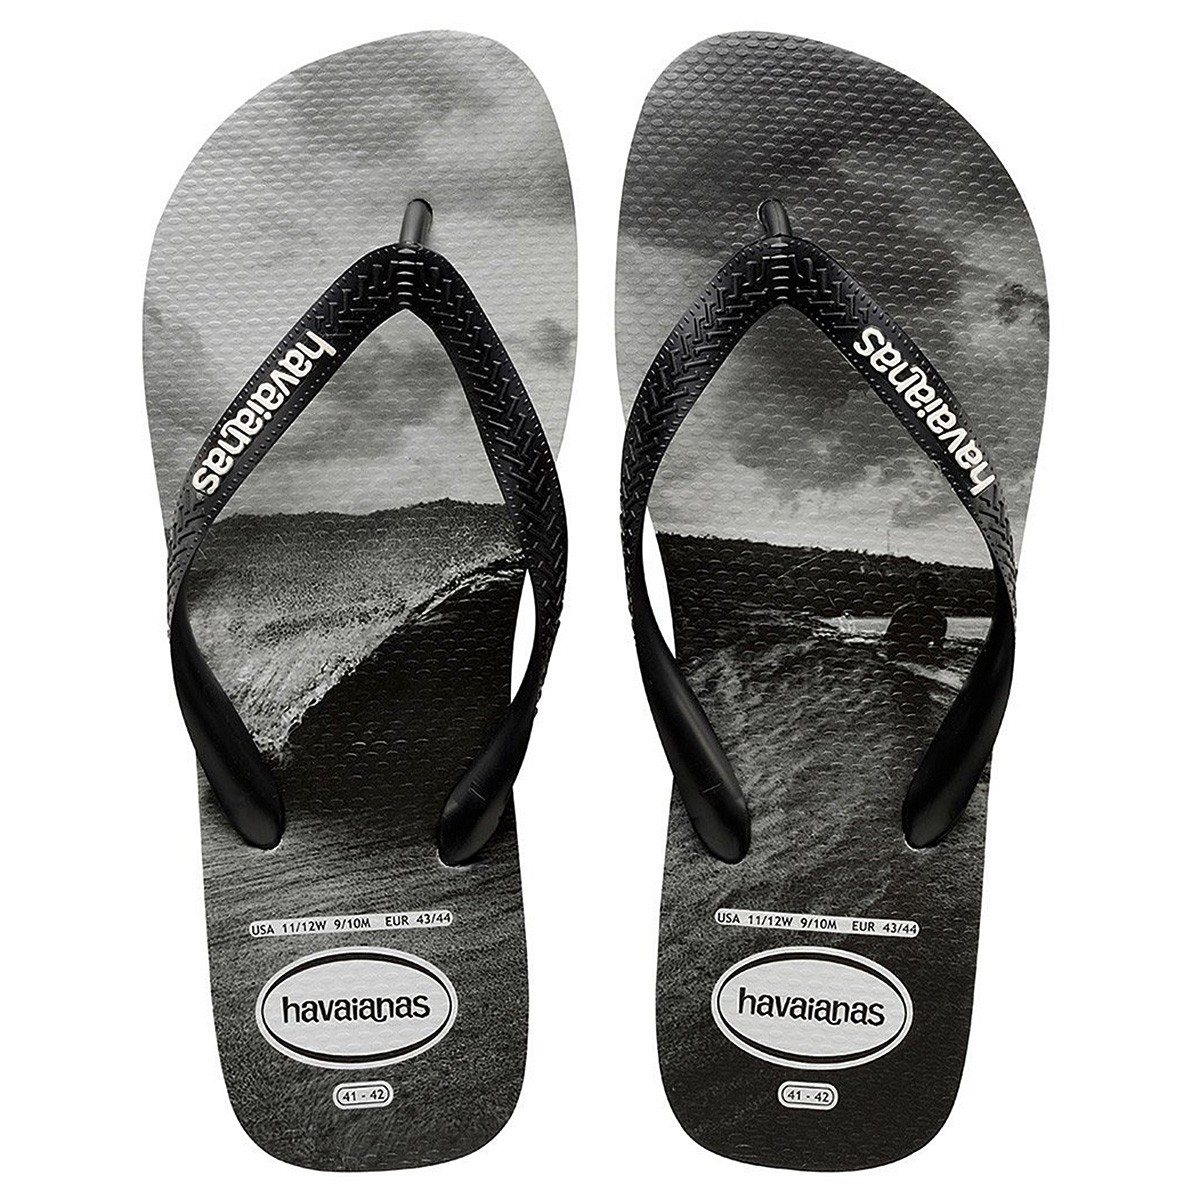 tongs havaianas photoprint homme chaussures et sandales. Black Bedroom Furniture Sets. Home Design Ideas